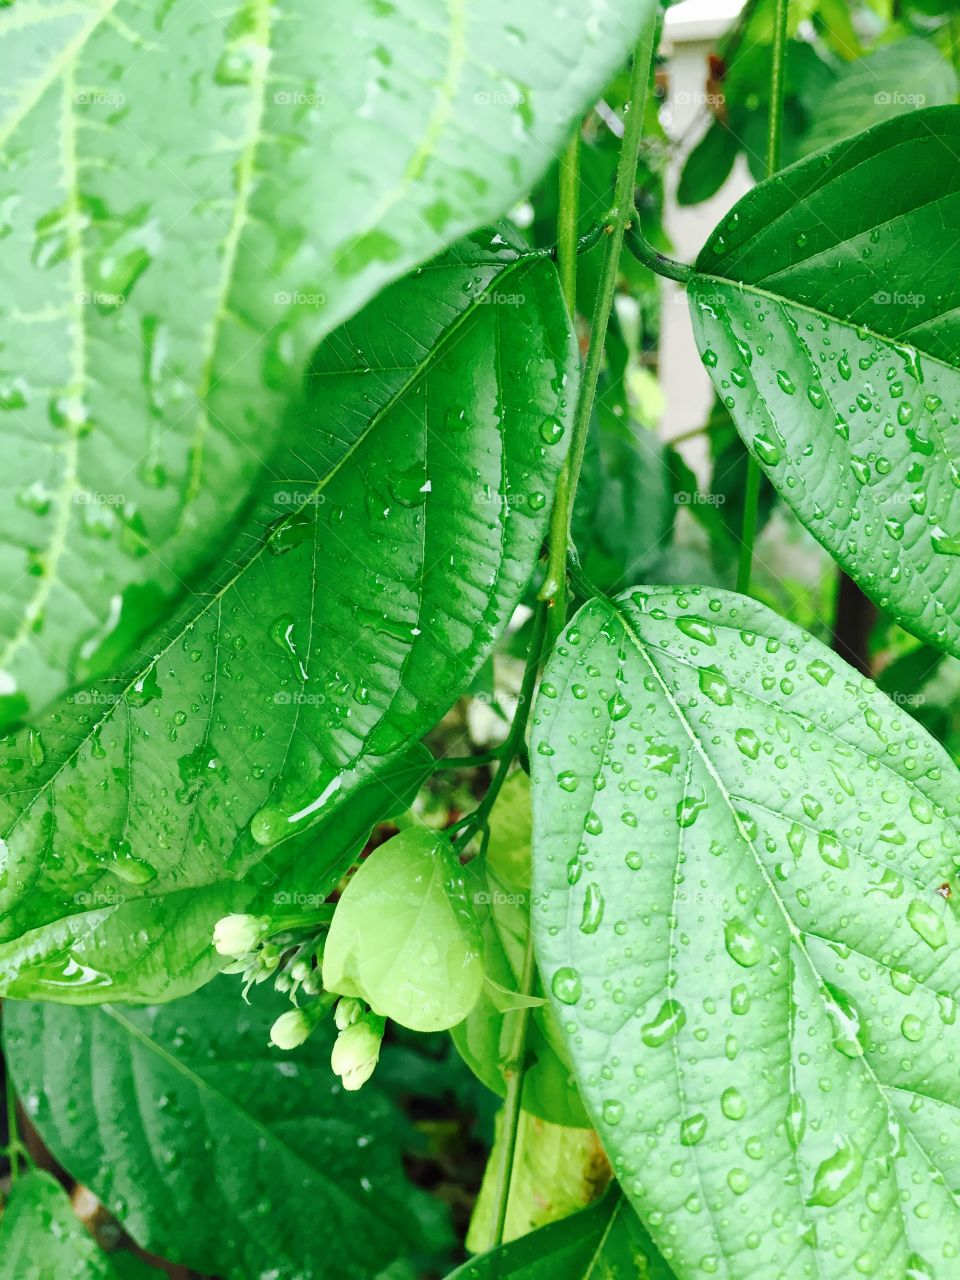 Leaves in the rain. Tropical nature